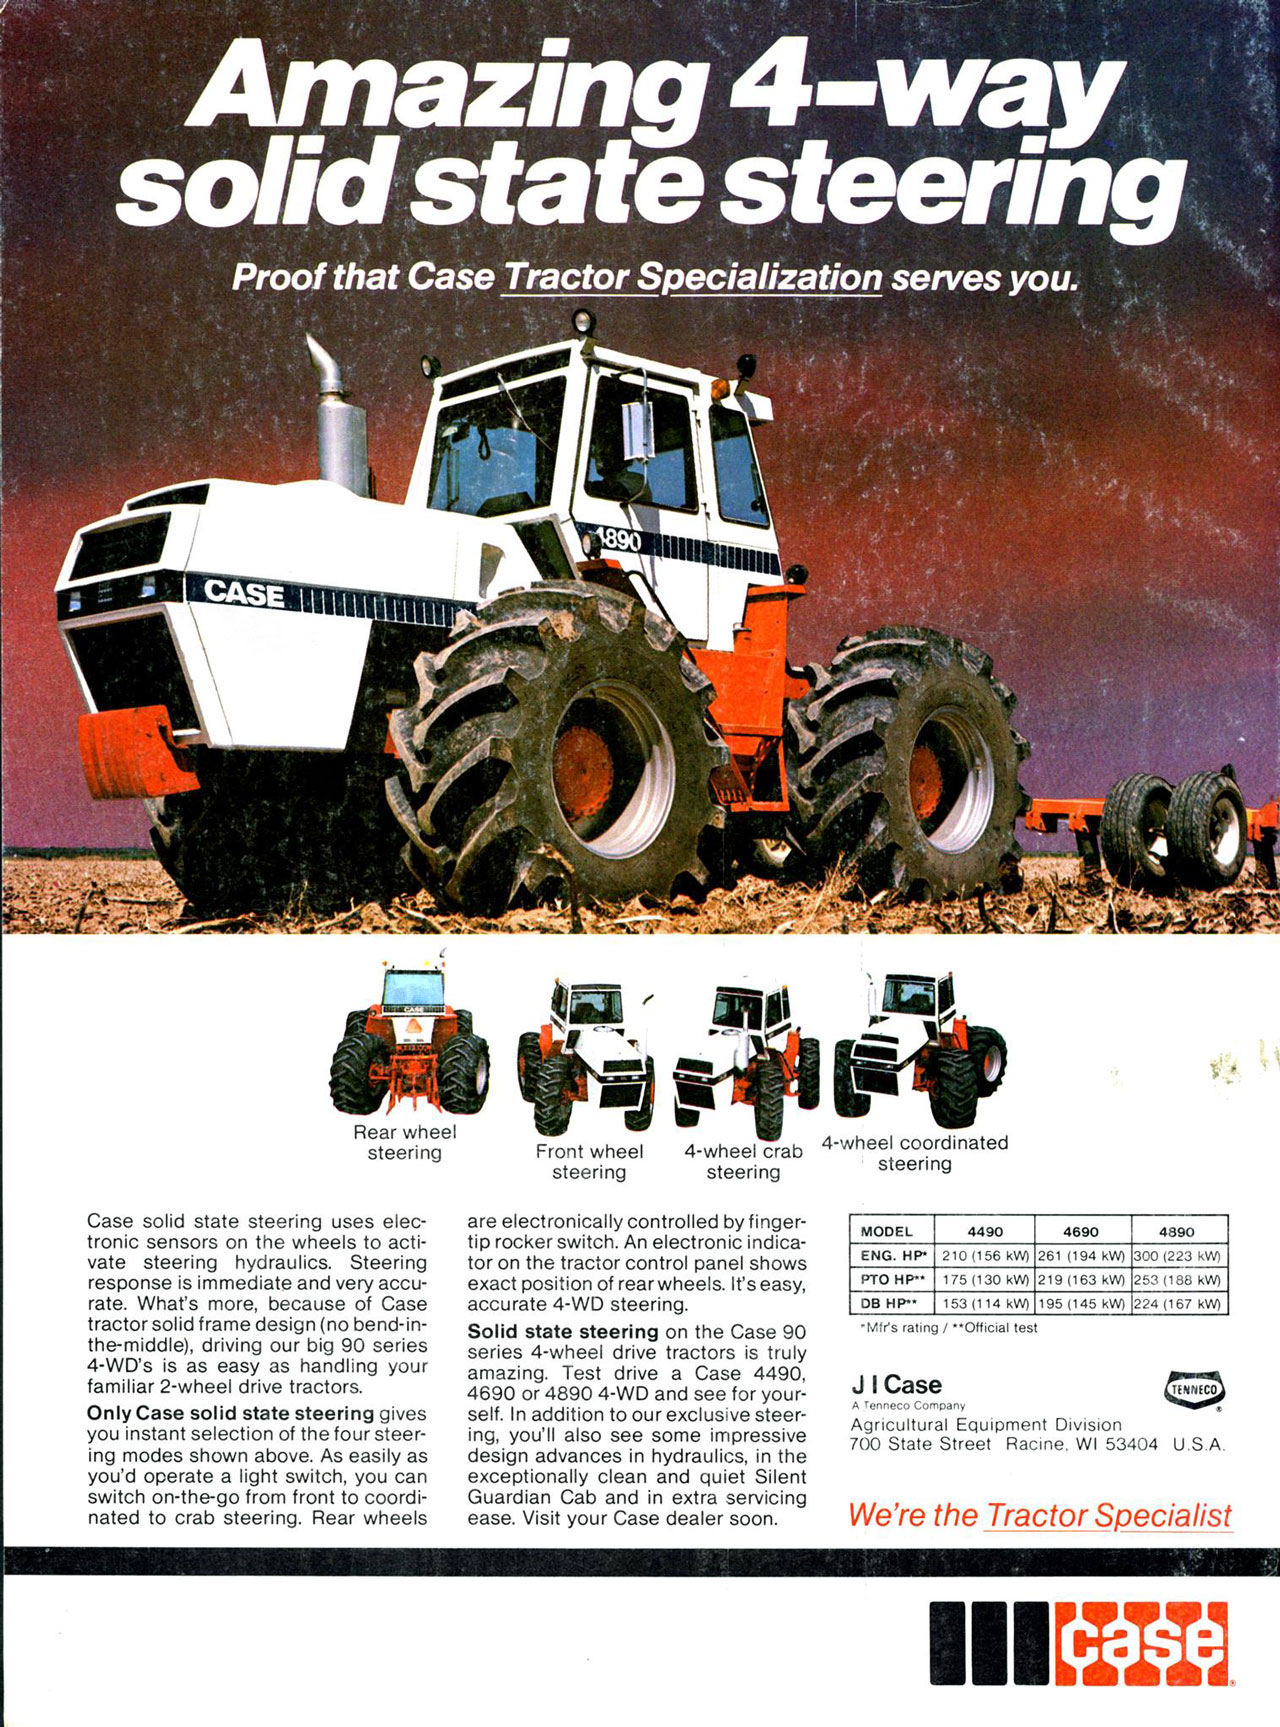 Amazing 4-way solid state steering. Proof that Case Tractor Specialization serves you. Proof that Case  Tractor Specialization serves you.   Rear wheel steering  Case solid state steering uses elec-tronic sensors on the wheels to acti-vate steering hydraulics. Steering response is immediate and very accu-rate. What's more, because of Case tractor solid frame design (no bend-in-the-middle), driving our big 90 series 4-WD's is as easy as handling your familiar 2-wheel drive tractors. Only Case solid state steering gives you instant selection of the four steer-ing modes shown above. As easily as you'd operate a light switch, you can switch on-the-go from front to coordi-nated to crab steering. Rear wheels  Front wheel steering  4-wheel crab 4-wheel coordinated steering steering  are electronically controlled by finger-tip rocker switch. An electronic indica-tor on the tractor control panel shows exact position of rear wheels. It's easy, accurate 4-WD steering. Solid state steering on the Case 90 series 4-wheel drive tractors is truly amazing. Test drive a Case 4490, 4690 or 4890 4-WD and see for your-self. In addition to our exclusive steer-ing, you'll also see some impressive design advances in hydraulics, in the exceptionally clean and quiet Silent Guardian Cab and in extra servicing ease. Visit your Case dealer soon.  MODEL 4490 4690 4890 ENG. HP. 210 (156 kW) 261 (194 kV/) 300 (223 kW) PTO HP'.. 175 (130 kW) 219 (163 kVV) 253 (188 kVV) DB HP•• 153 (114 OM 195 (145 kW) 224 (167 kW)  •Mfr's rating / *•Official test  J I Case A Tenneco ,ornpany Agricultural Equipment Division 700 State Street Racine. WI 53404 U.S.A.  We're the  Tractor Specialist  HEM